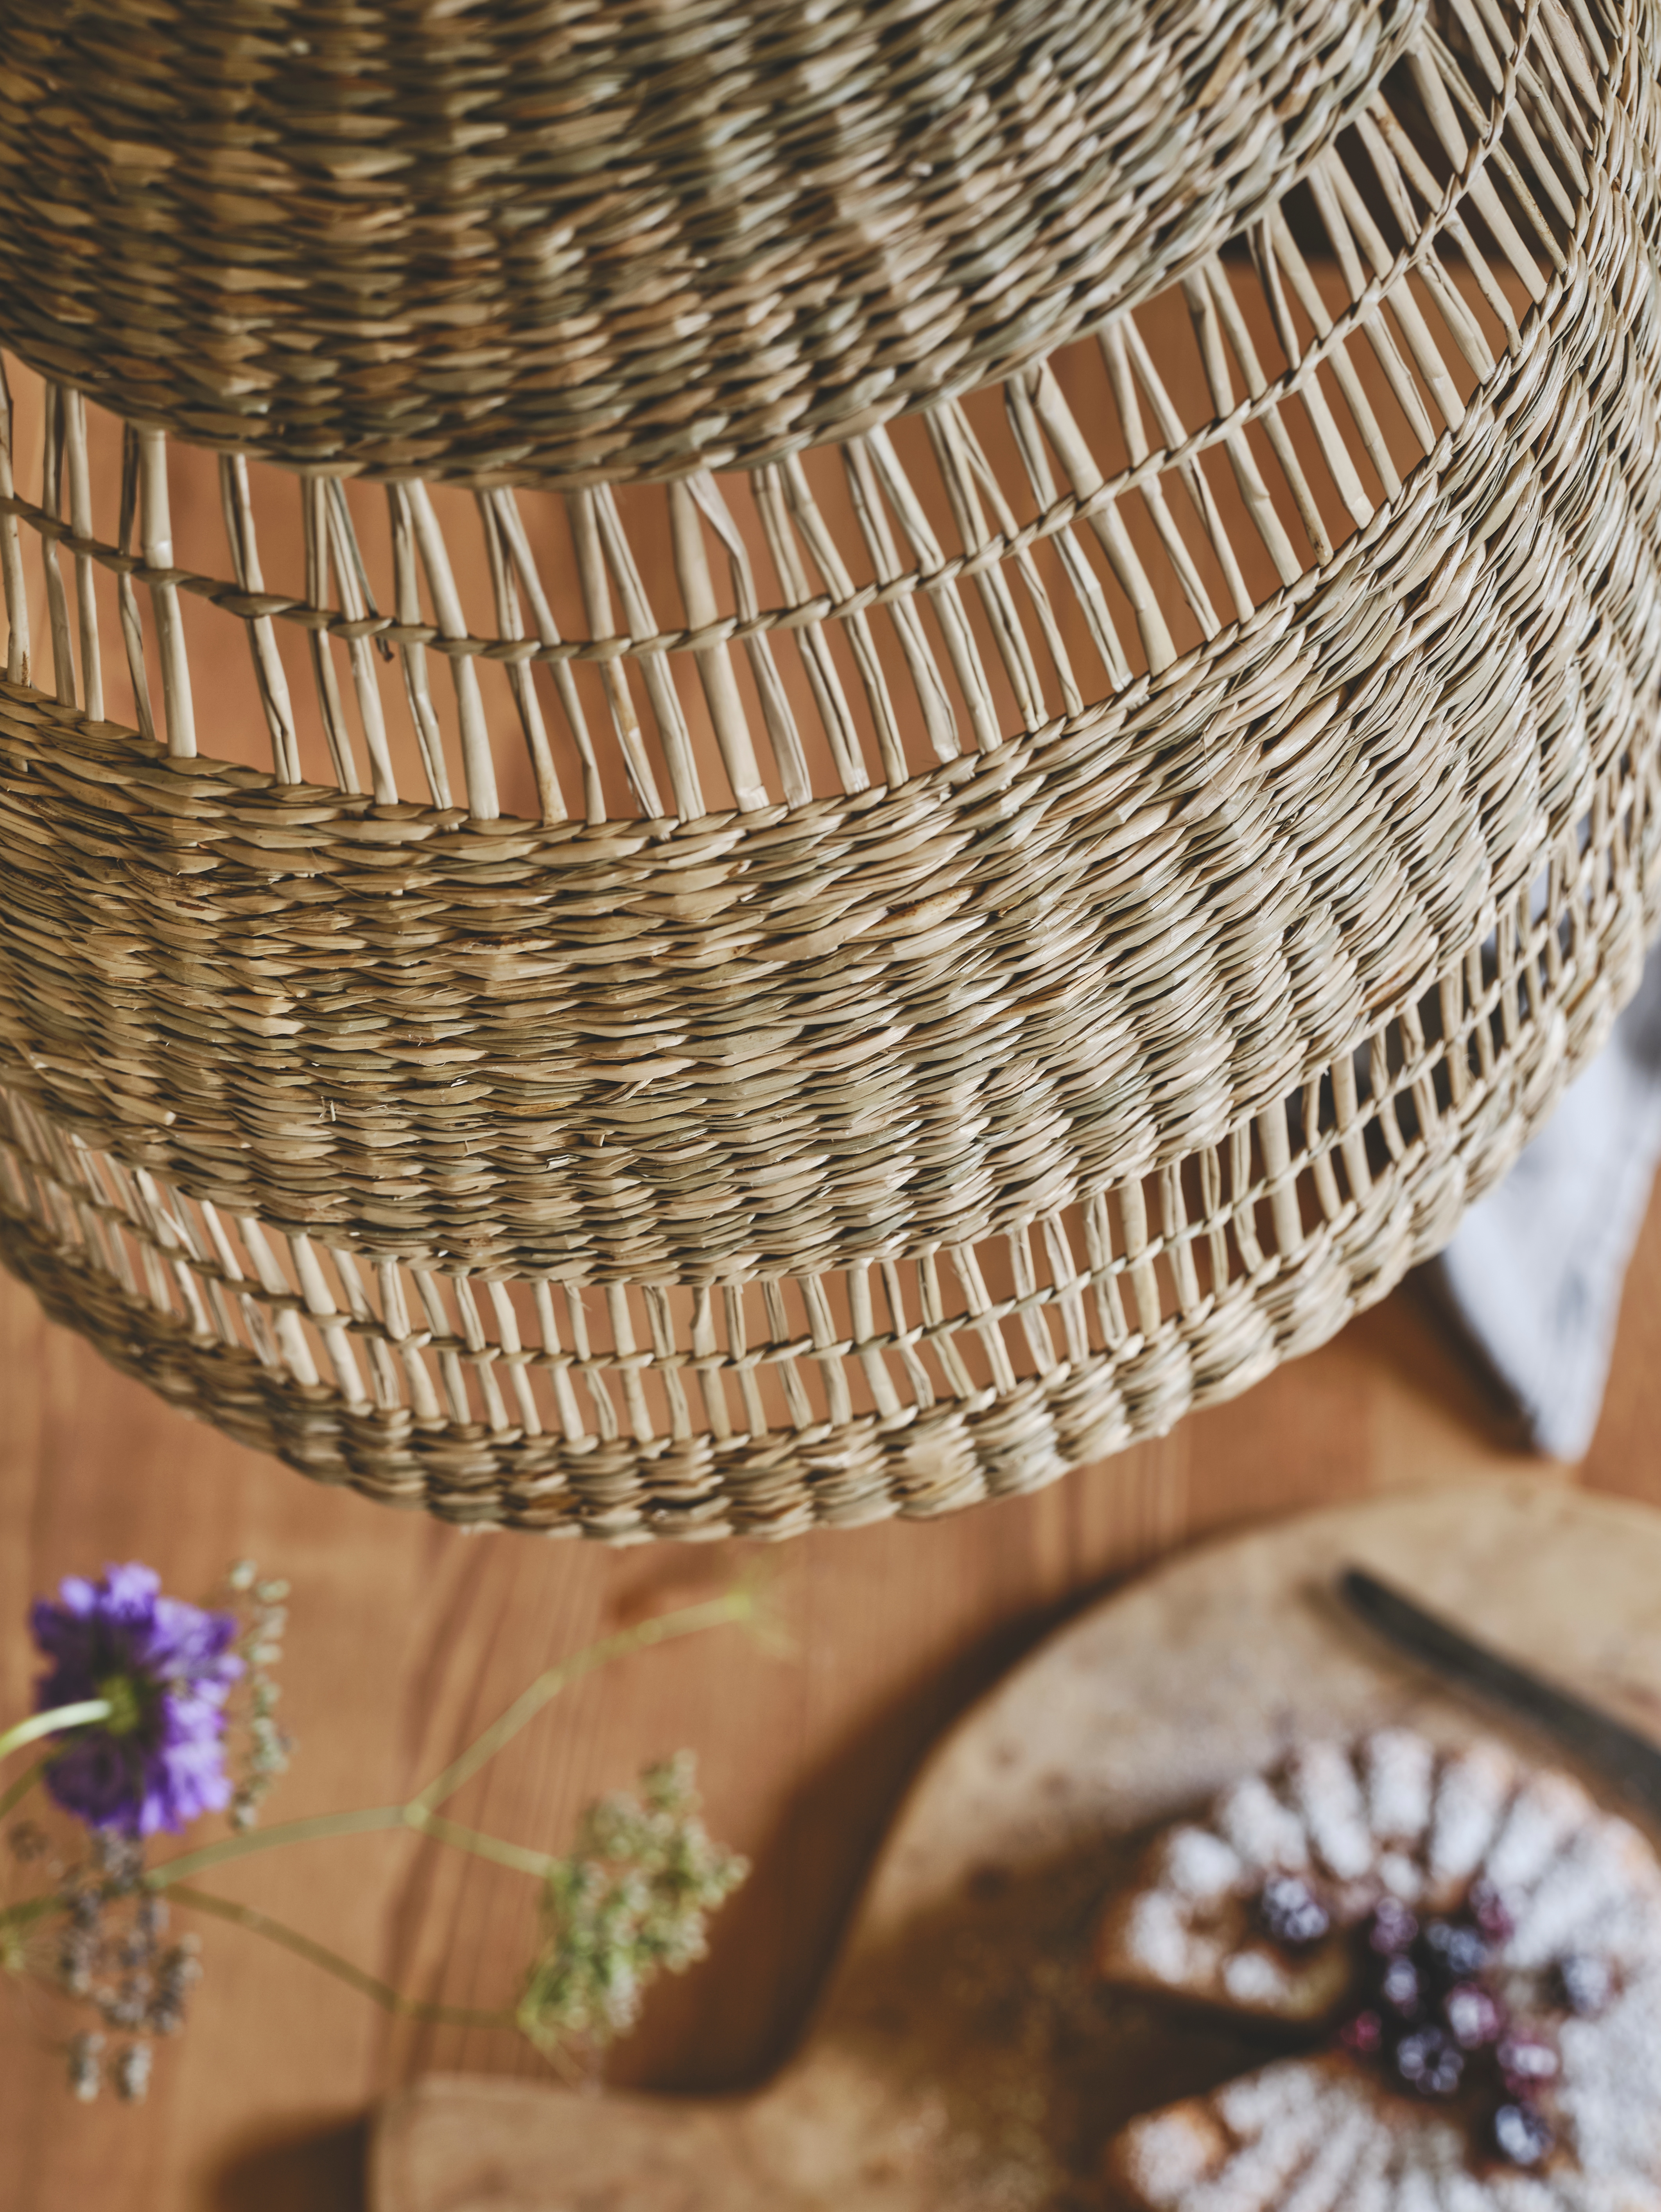 Close-up shot of natural hand-woven lampshade made from seagrass hanging above a wood table in the dining room.